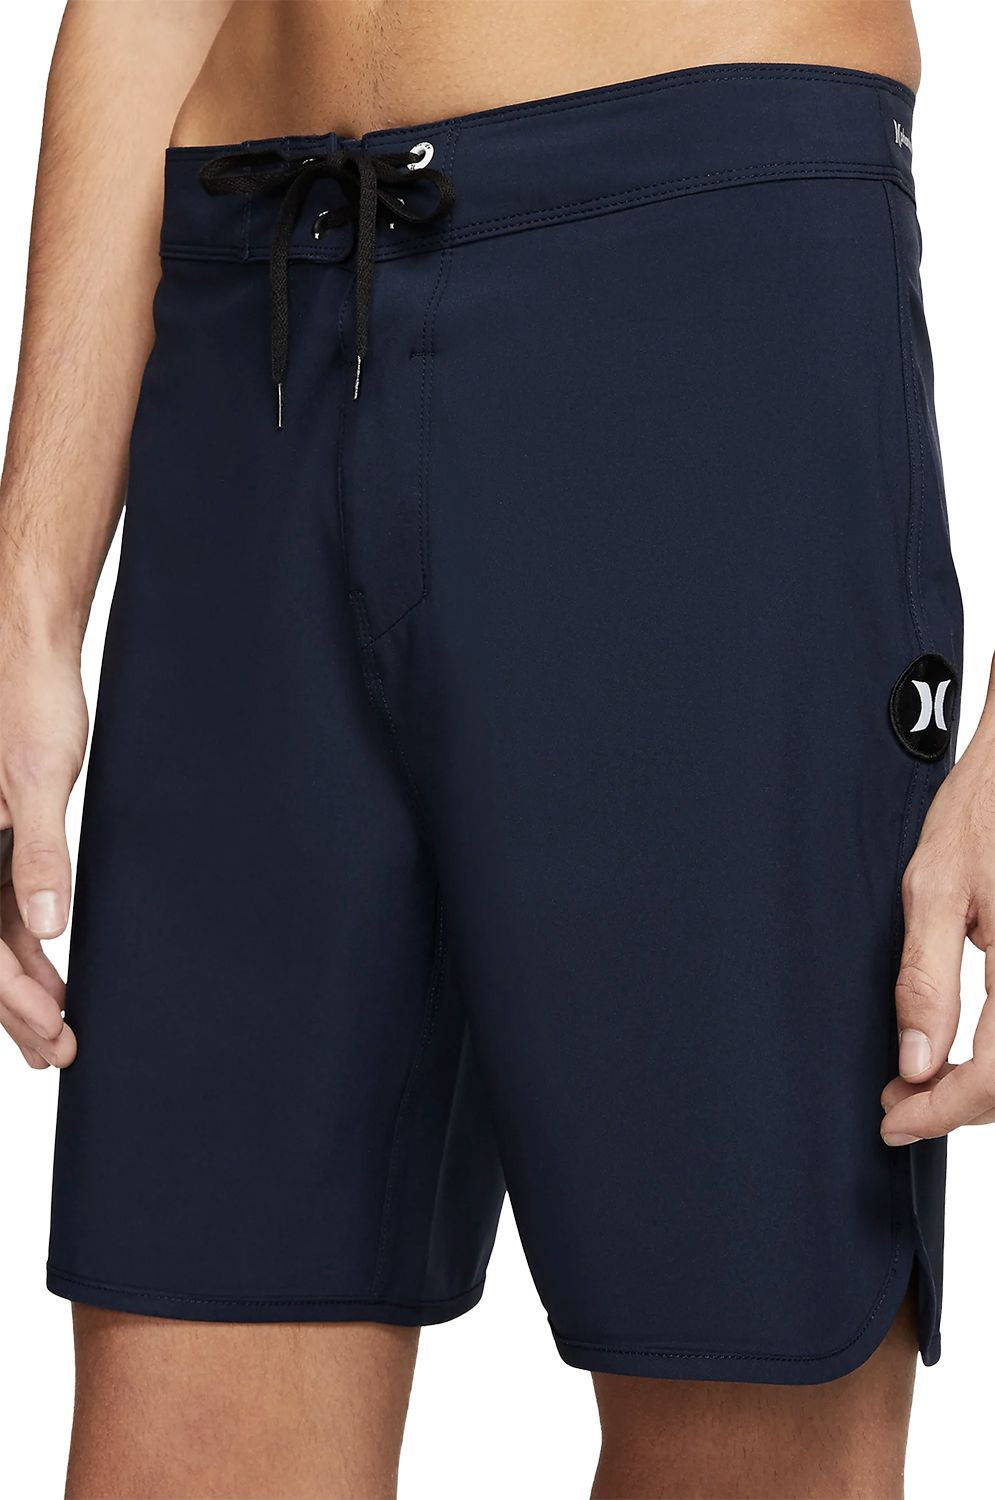 Boardshorts Hurley PHTM ONE&ONLY 18' Obsidian